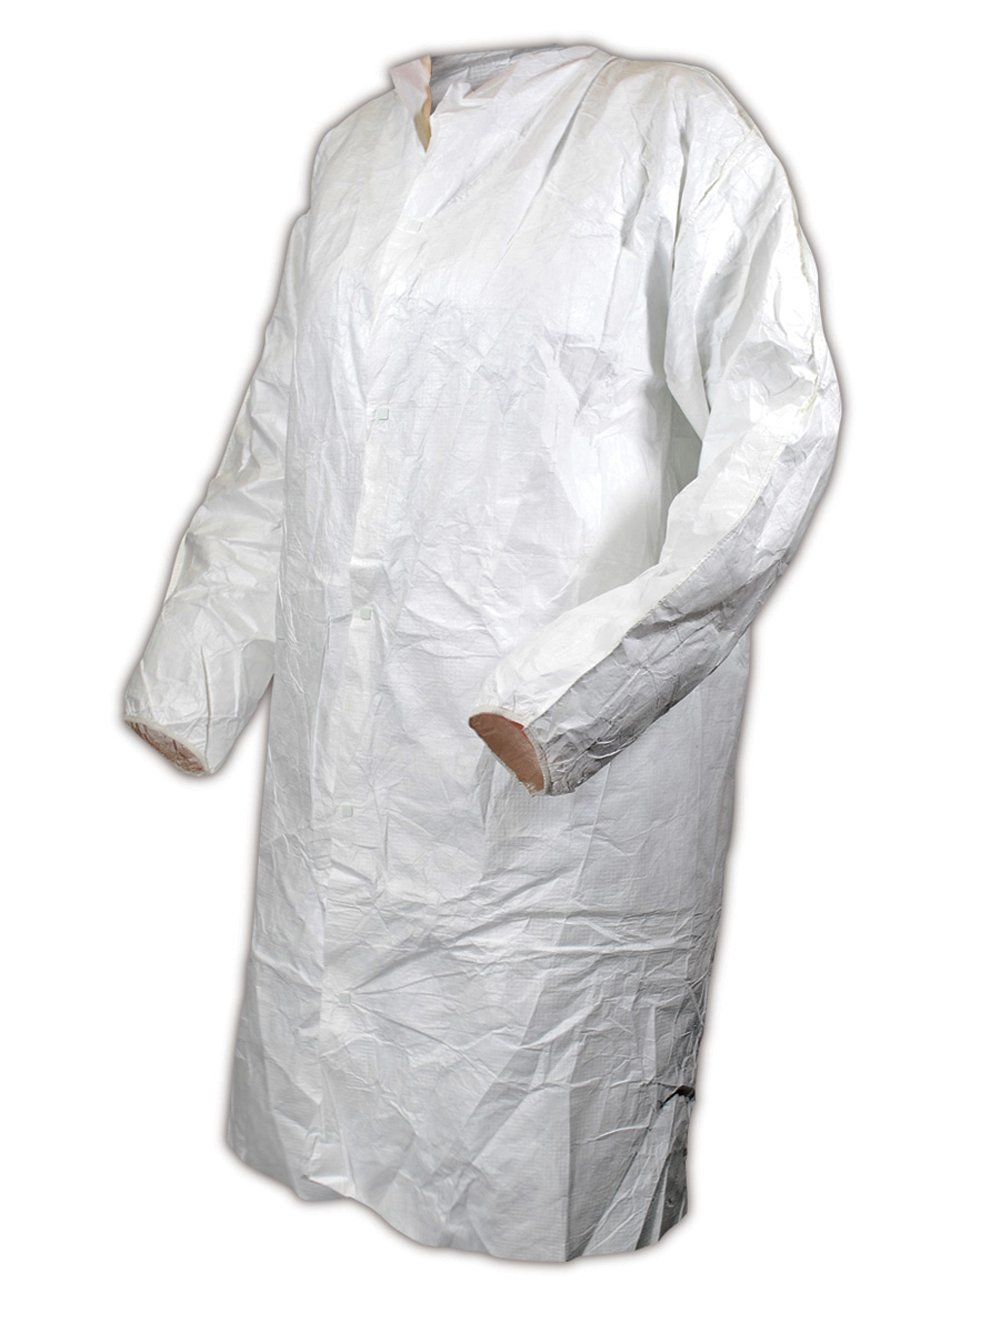 Magid CC111XXL EconoWear Tyvek Disposable Lab Coat, 2XL, White (Case of 30): Industrial & Scientific